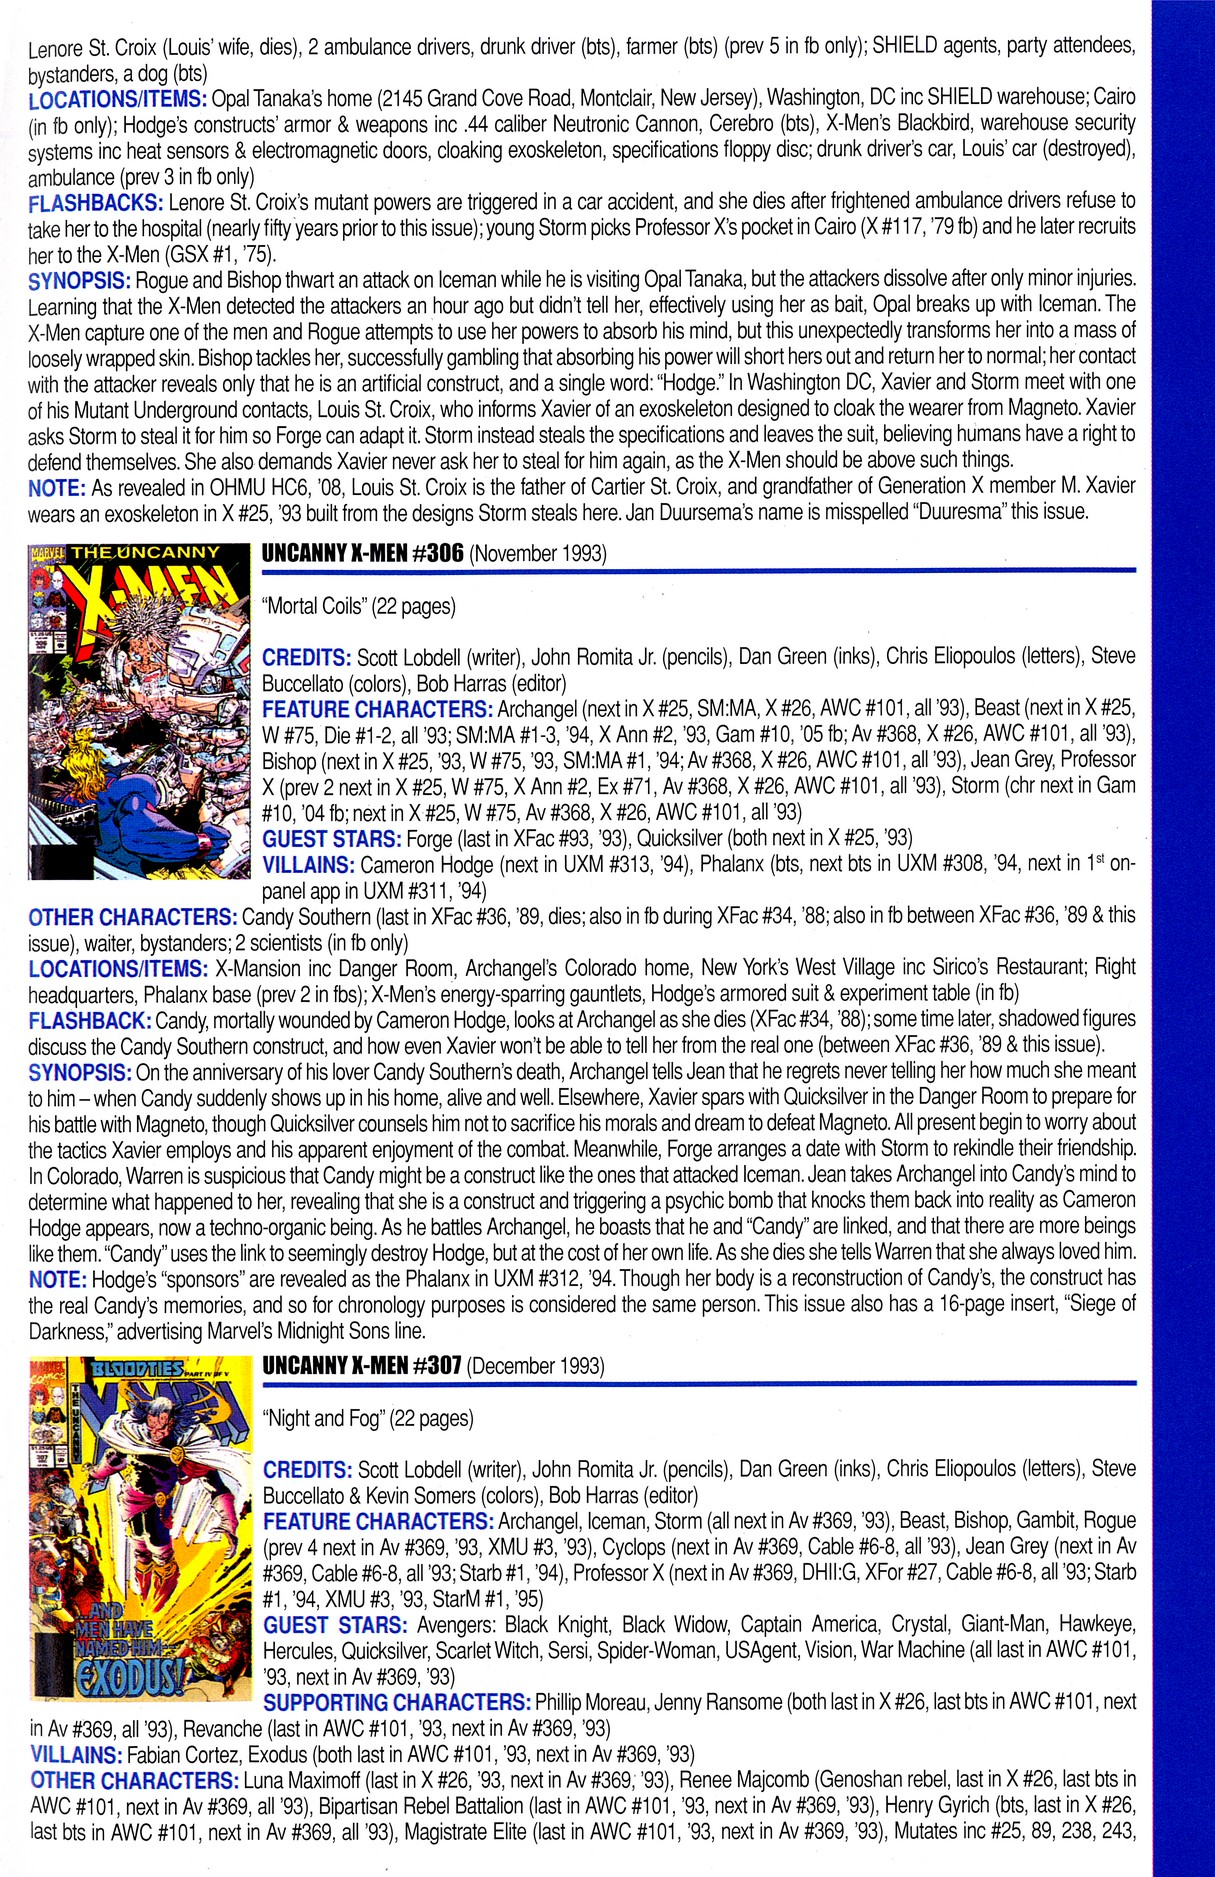 Read online Official Index to the Marvel Universe comic -  Issue #8 - 47